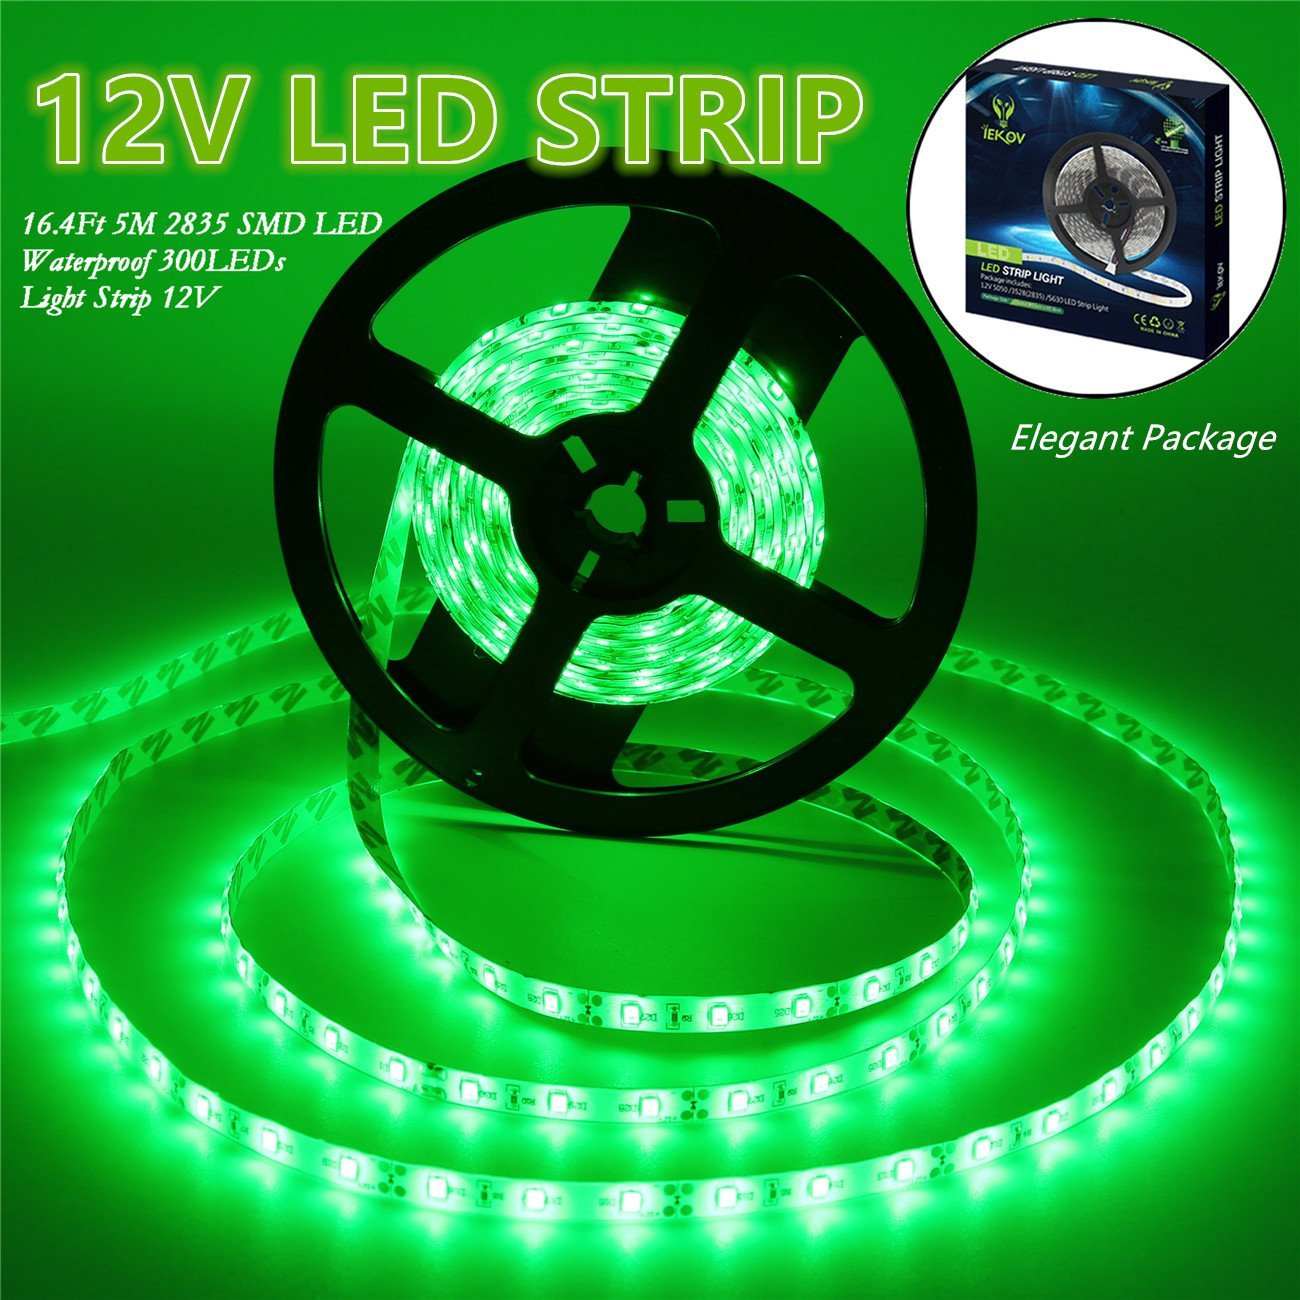 Led Strip Lights, IEKOV™ 2835 SMD 300LEDs Waterproof Flexible Xmas Decorative Lighting Strips, LED Tape, 5M 16.4Ft DC12V, 2 times brightness than SMD 3528 LED Light Strip (Green)